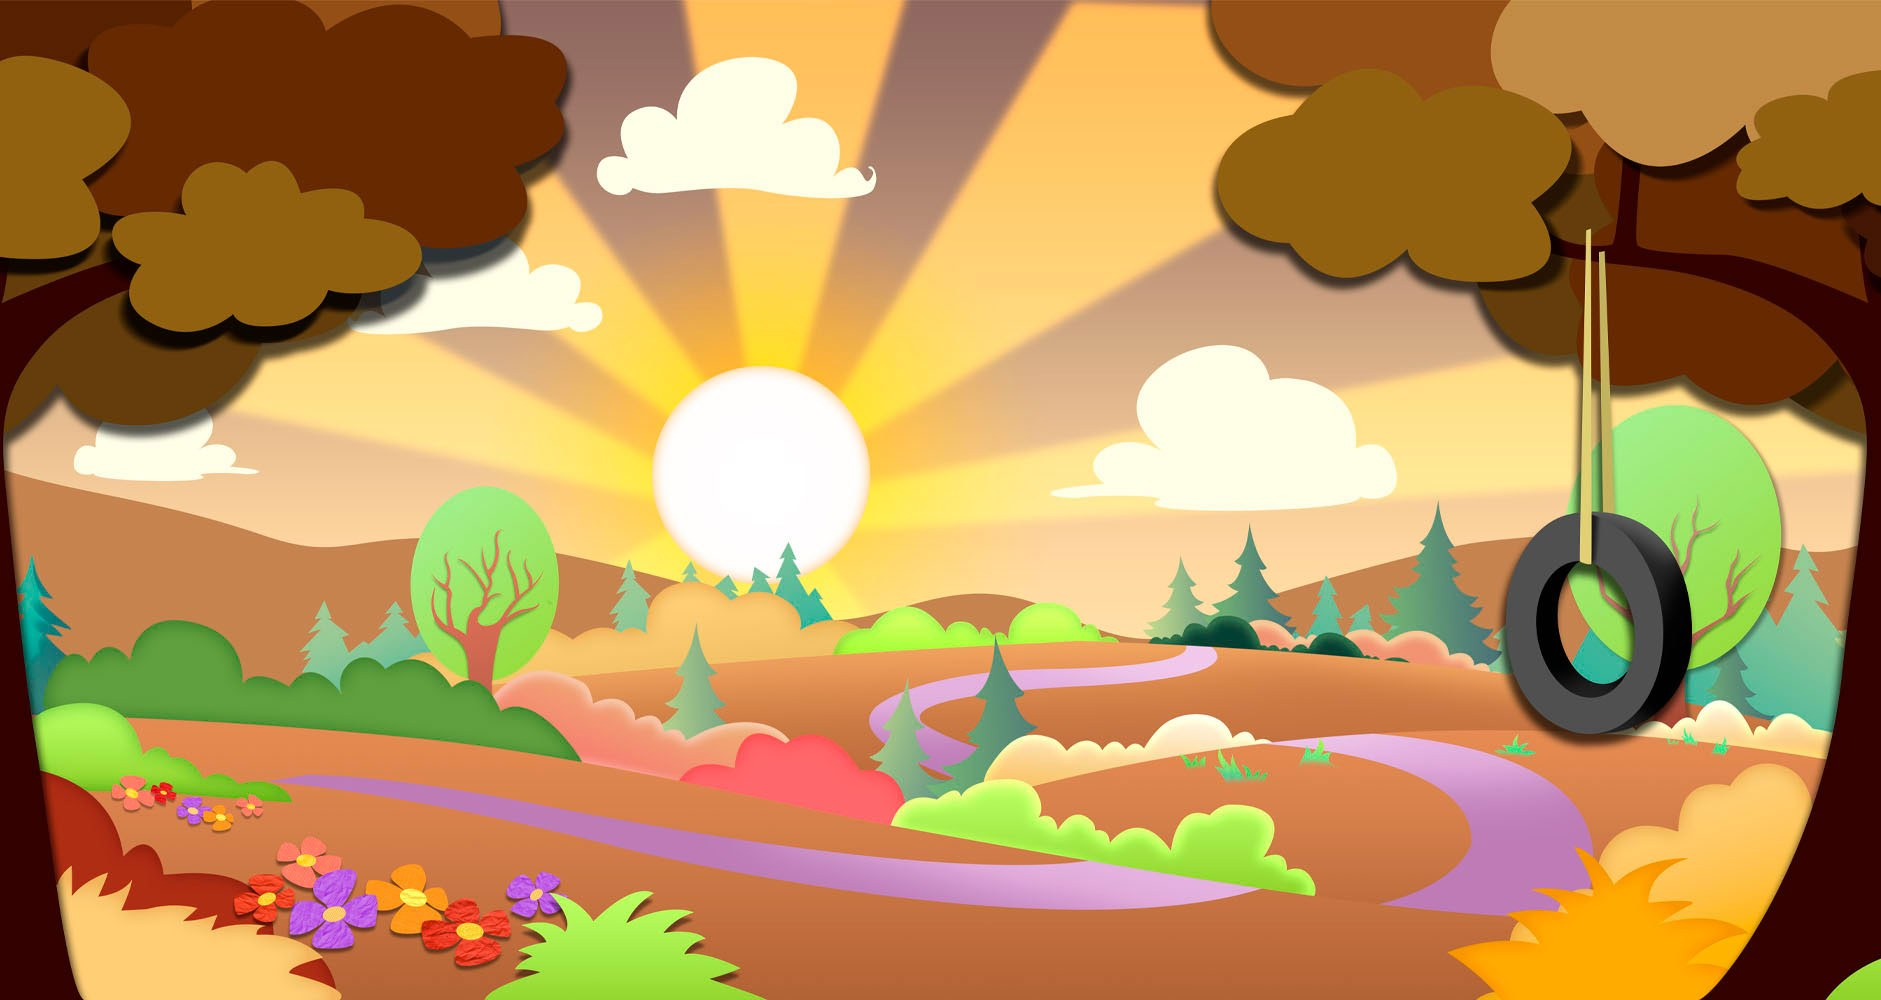 Modern Calico Countryside Sunset Concept Wall Art